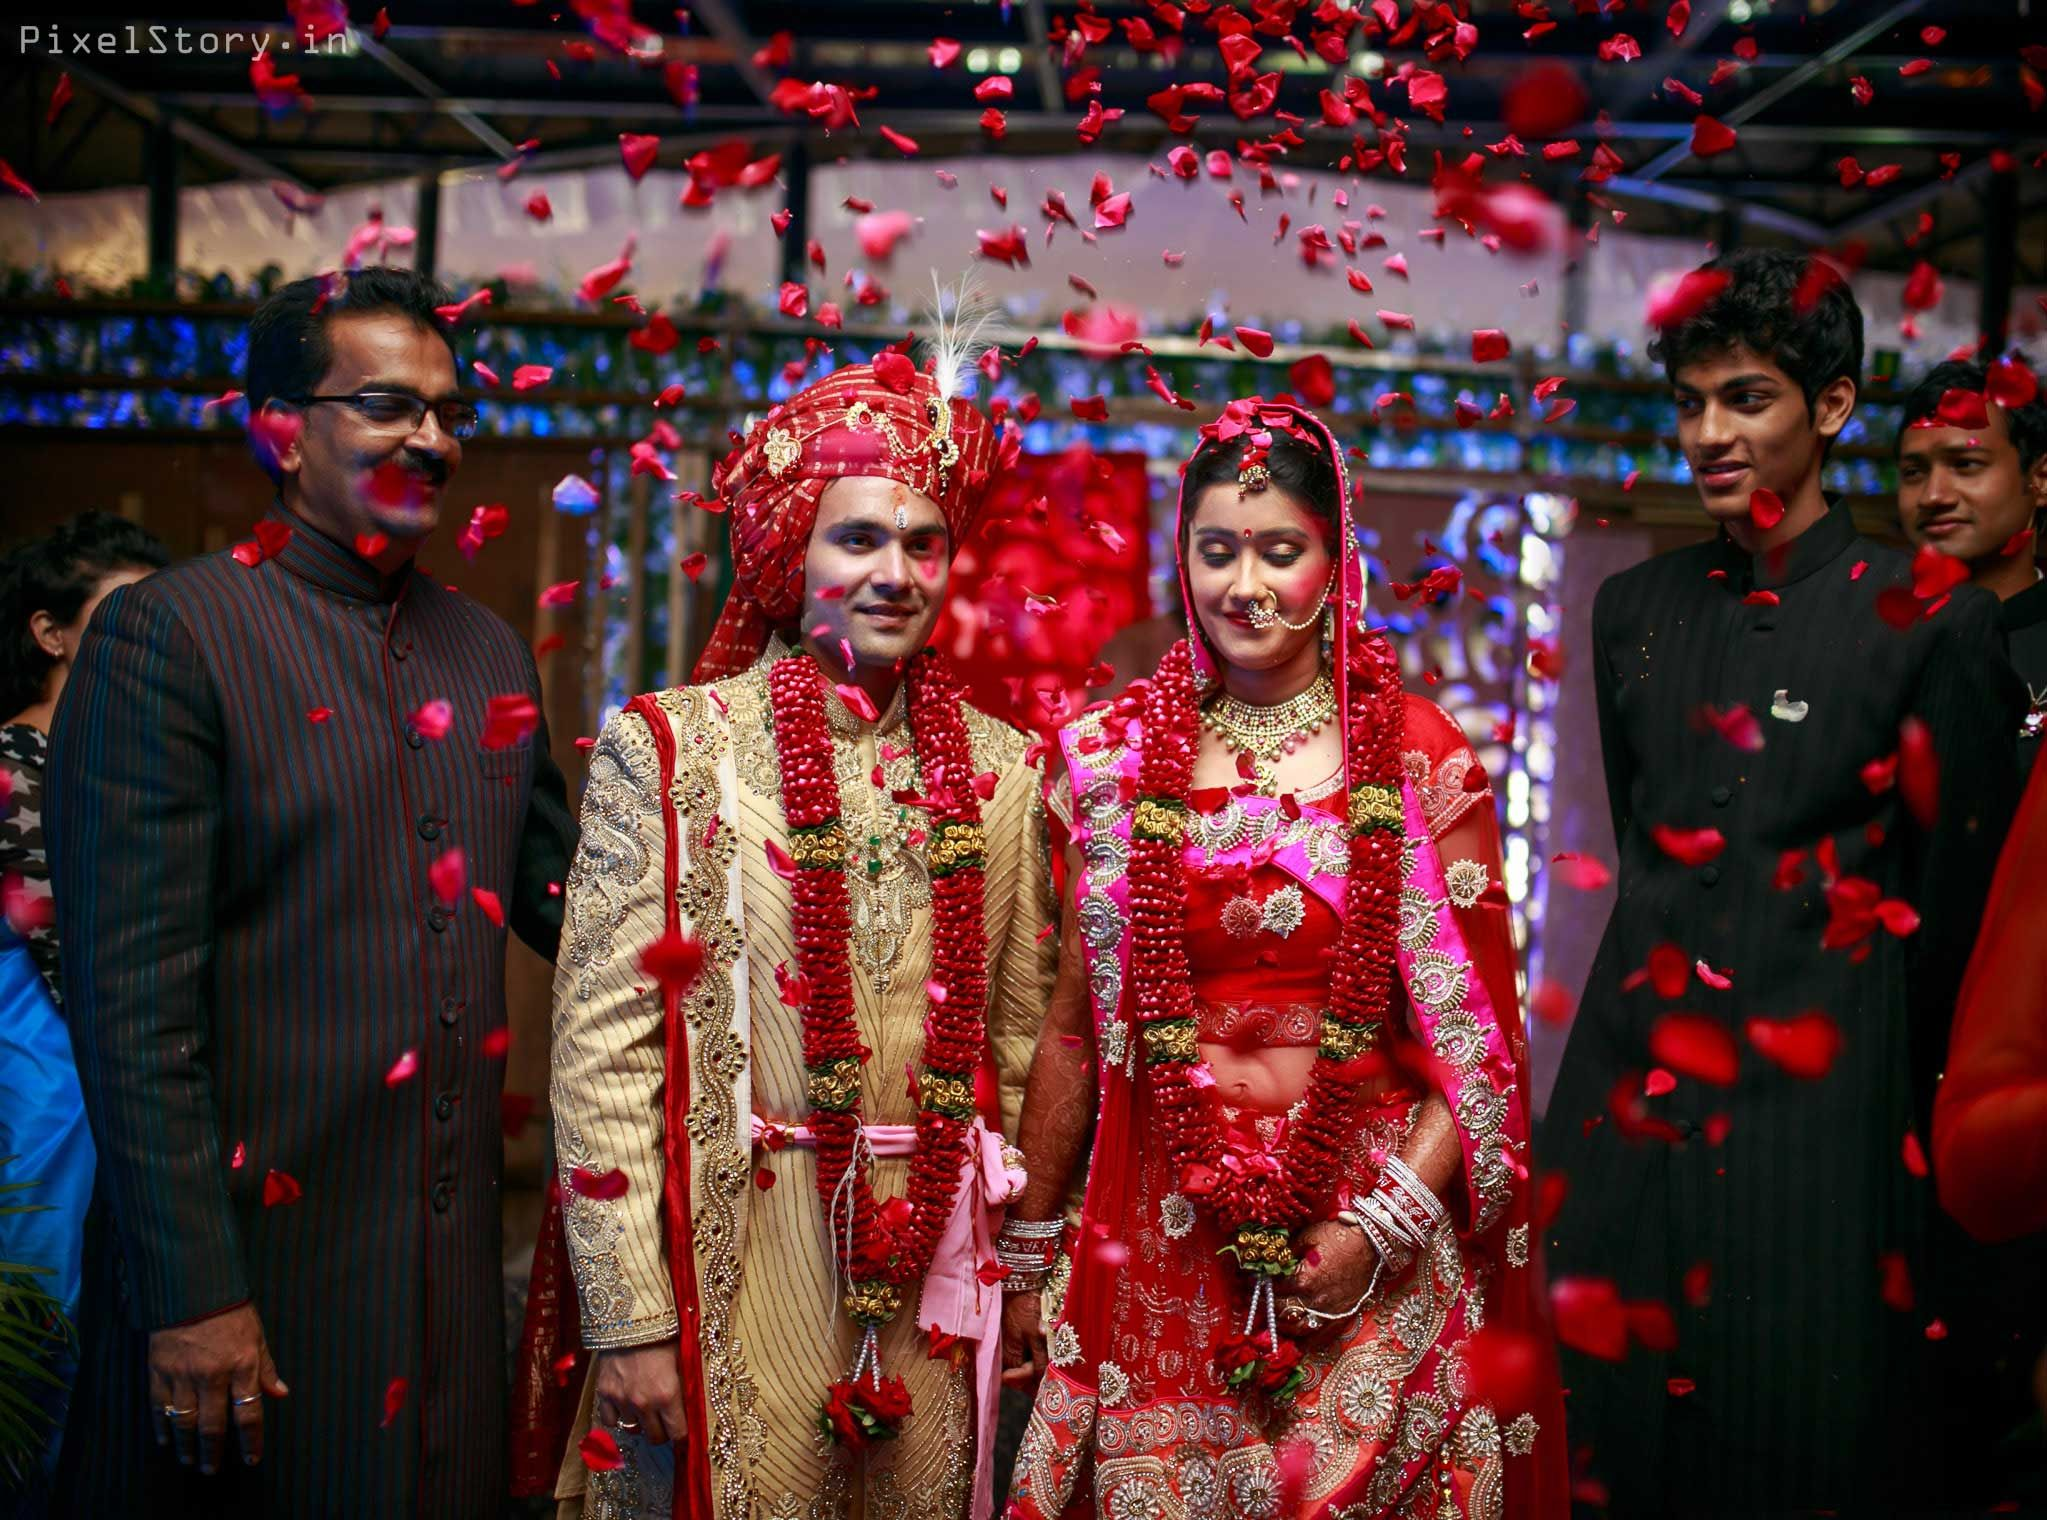 Real Indian Weddings: A Stunning Arranged Marriage Filled